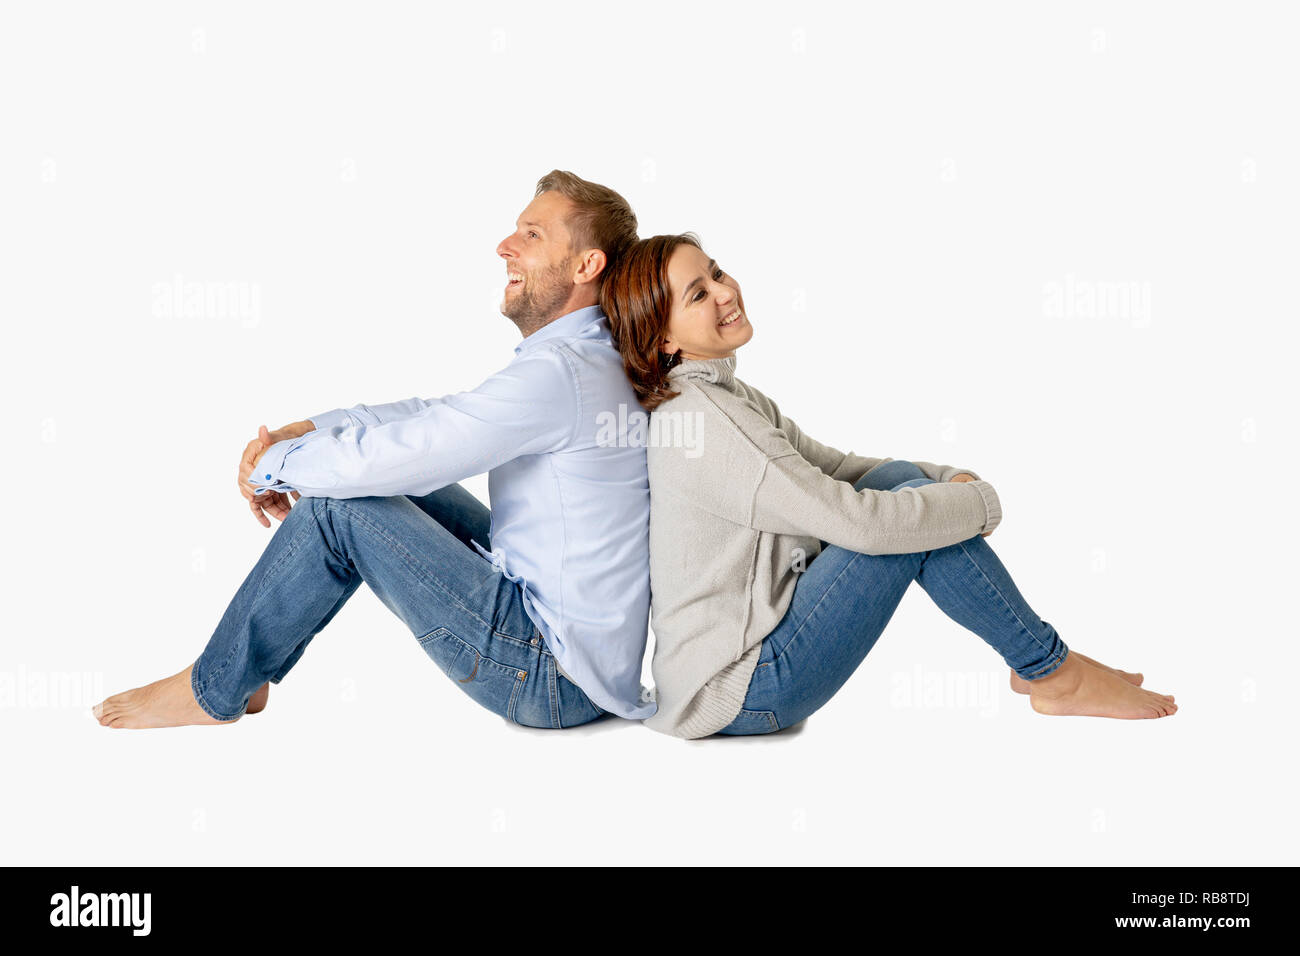 Happy couple isolated on white background with copy space Thinking and Planning wealthy future together in Love, Buying First house, having Child Baby Stock Photo